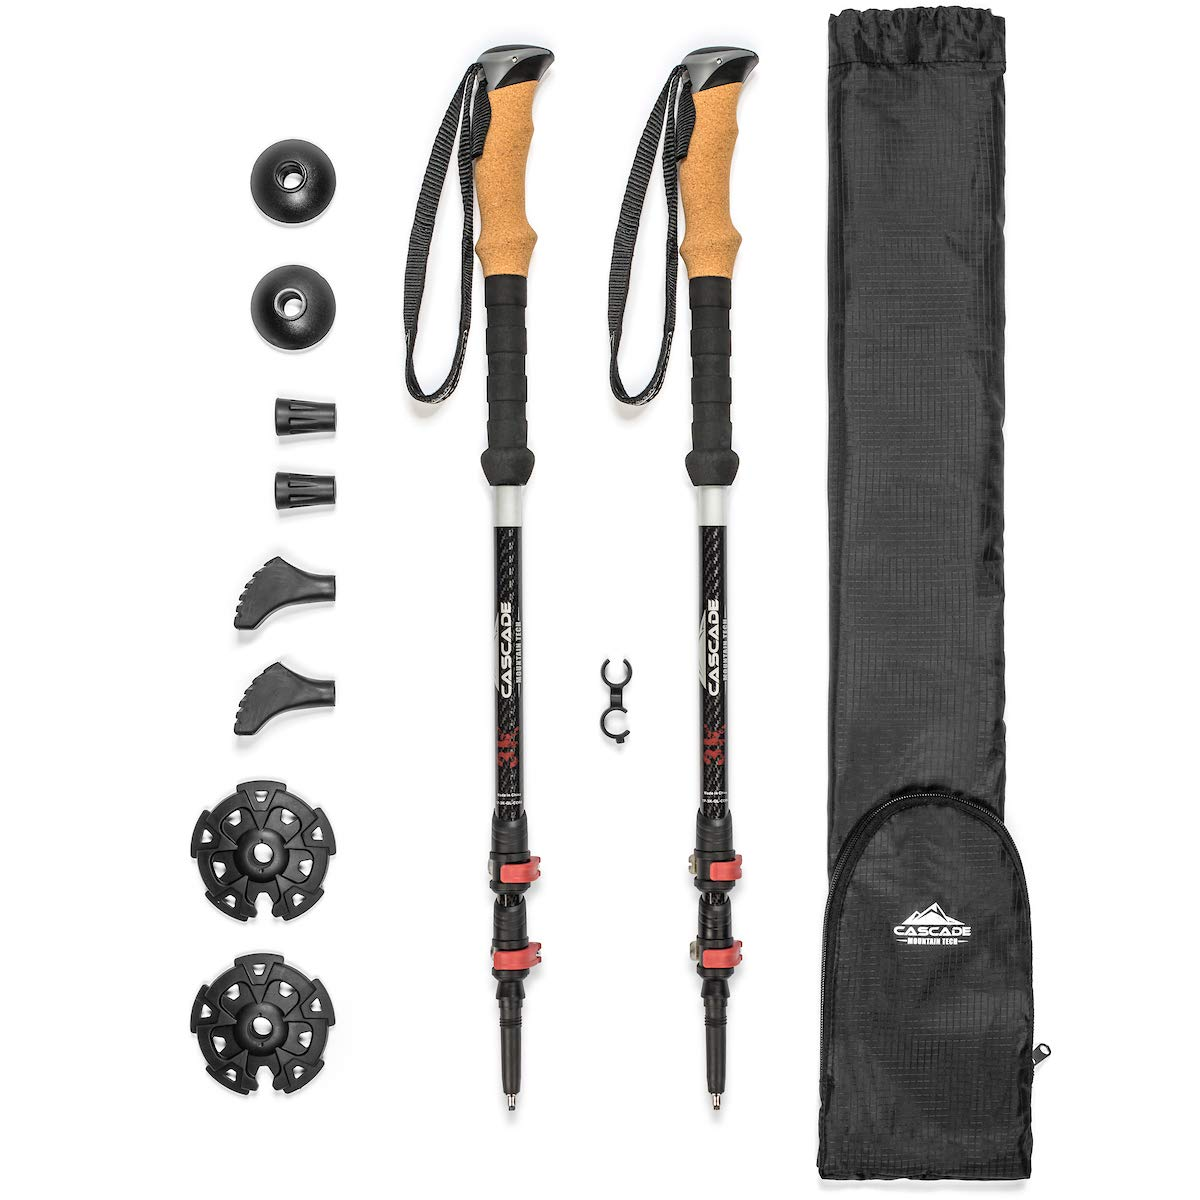 Cascade Mountain Tech 3K Carbon Fiber Trekking Poles Ultralight with Cork Grip and Quick Lock for Hiking and Walking